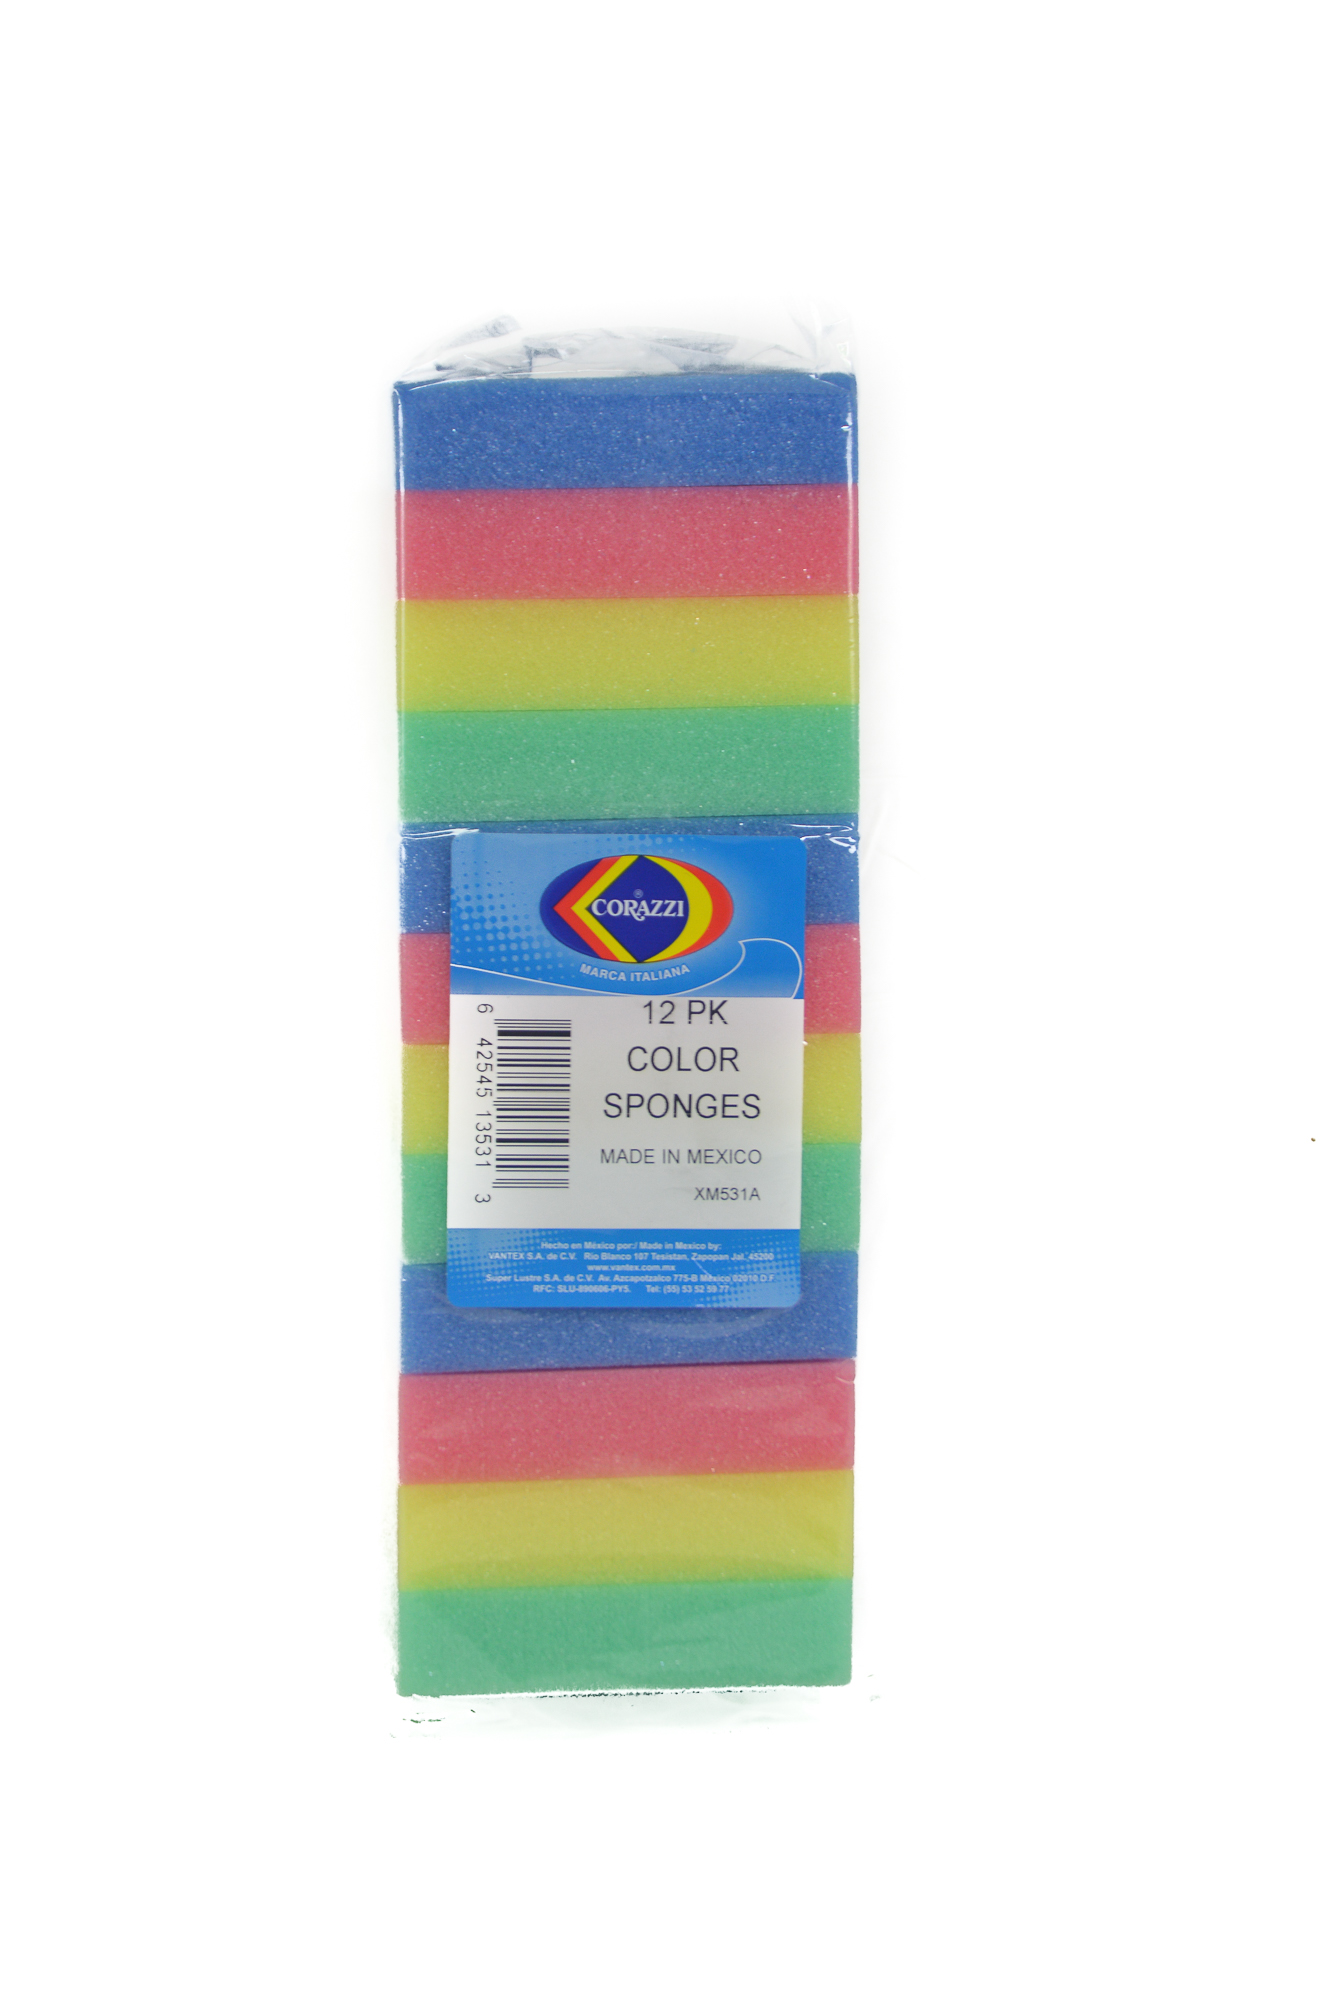 Carozi sponges (3 pack of 12 ct)